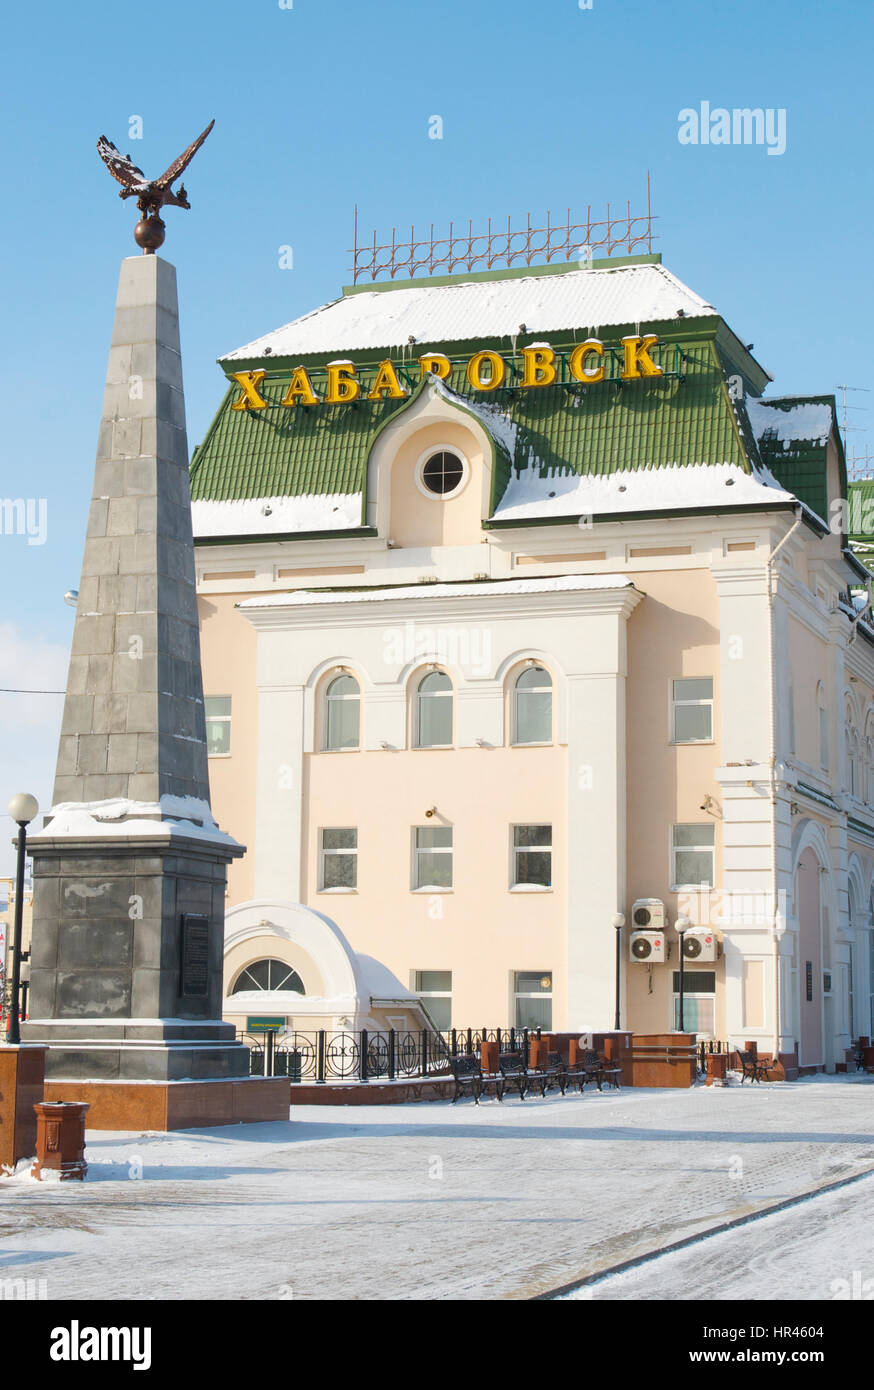 Khabarovsk Train Station recently renovated with statute of Khabarovsk and fountains in front on a cold winter day - Stock Image